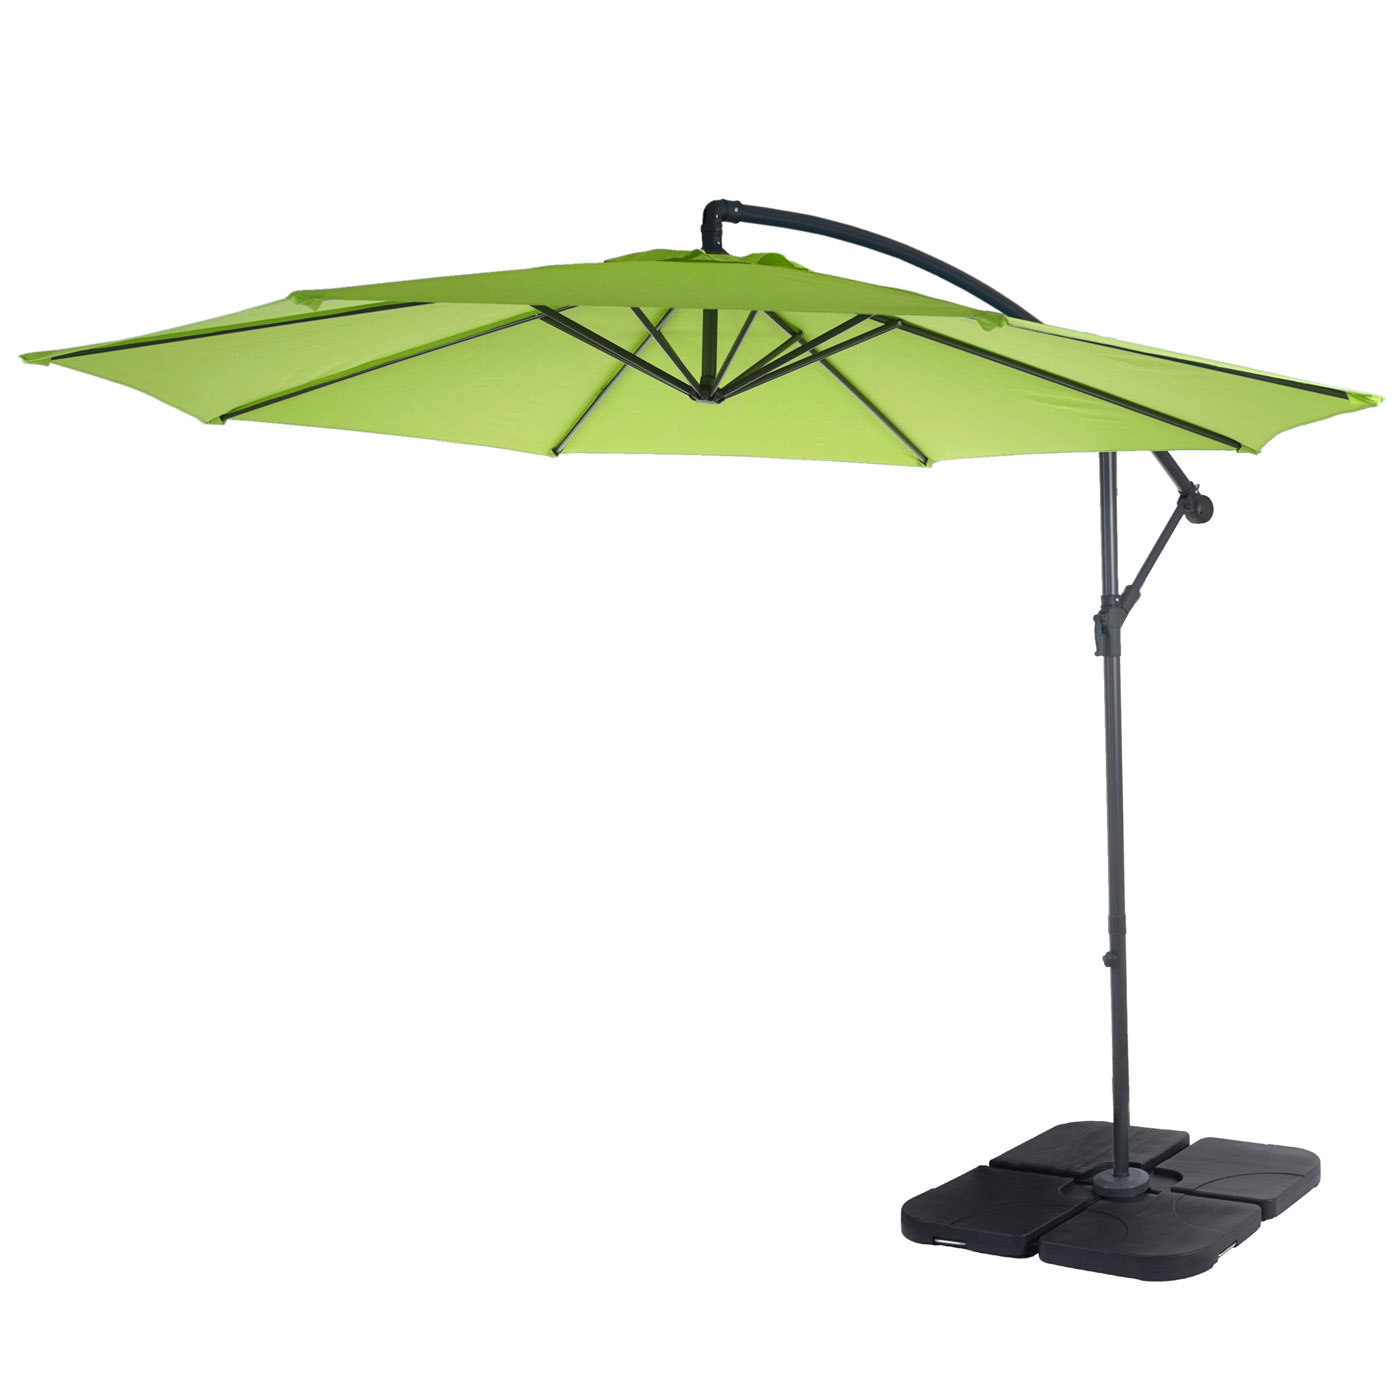 parasol d port semi pro acerra 3m inclinable vert limon avec support ebay. Black Bedroom Furniture Sets. Home Design Ideas